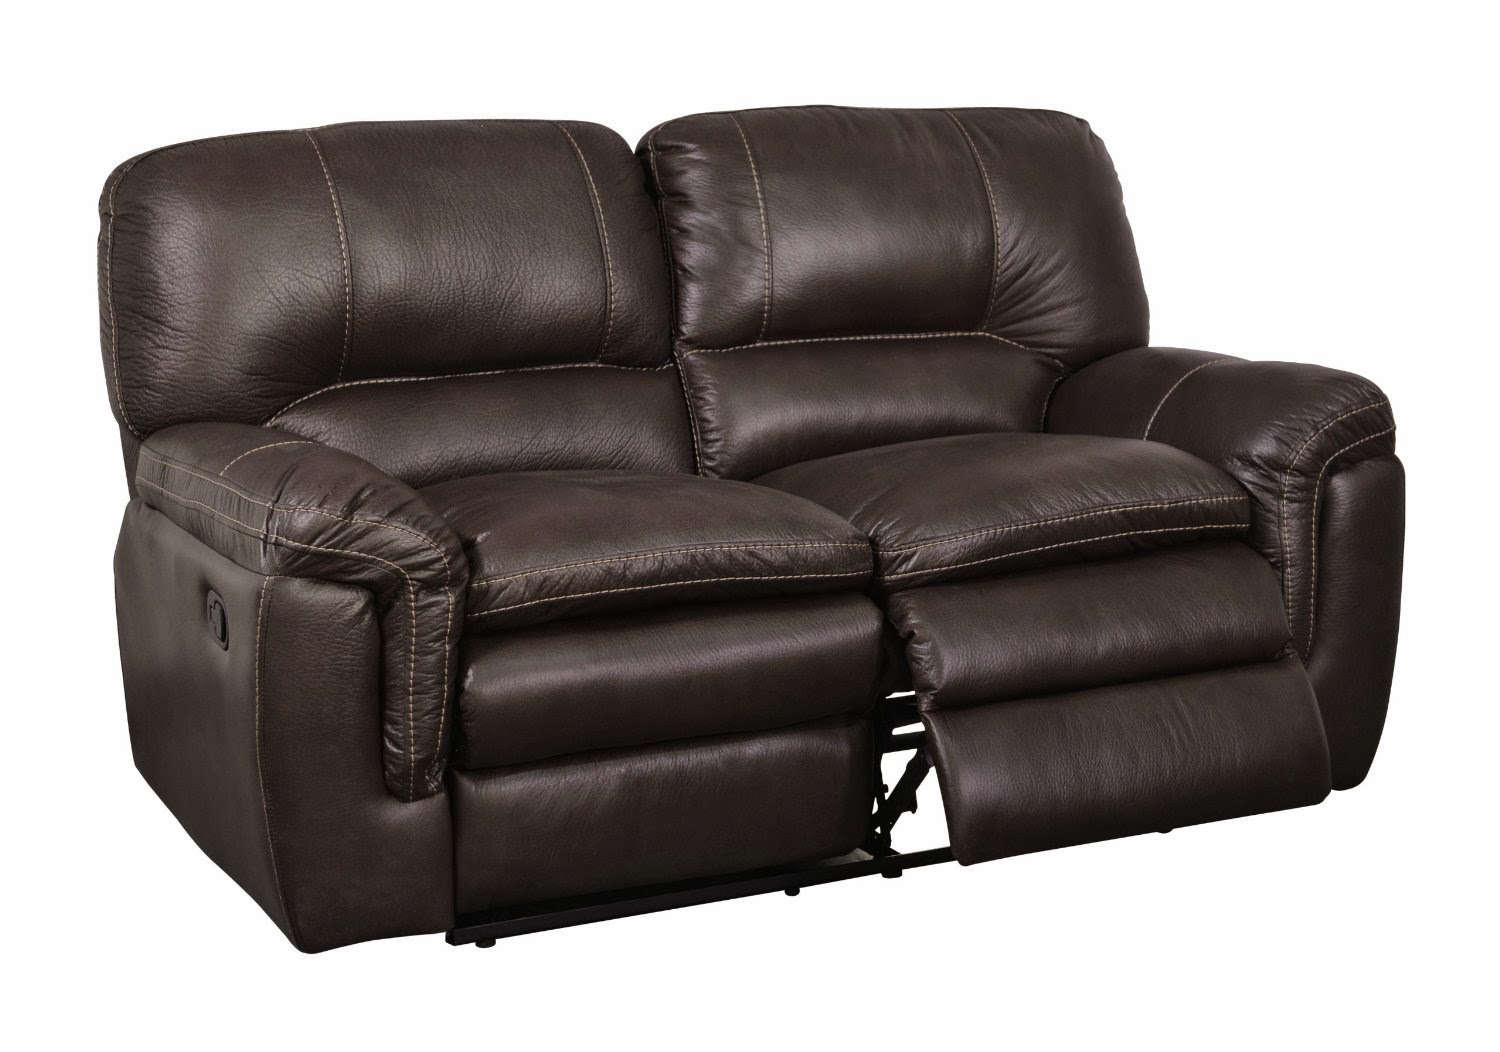 reclining sofas and loveseats sets rv sofa bed replacement mattress loveseat chair march 2015